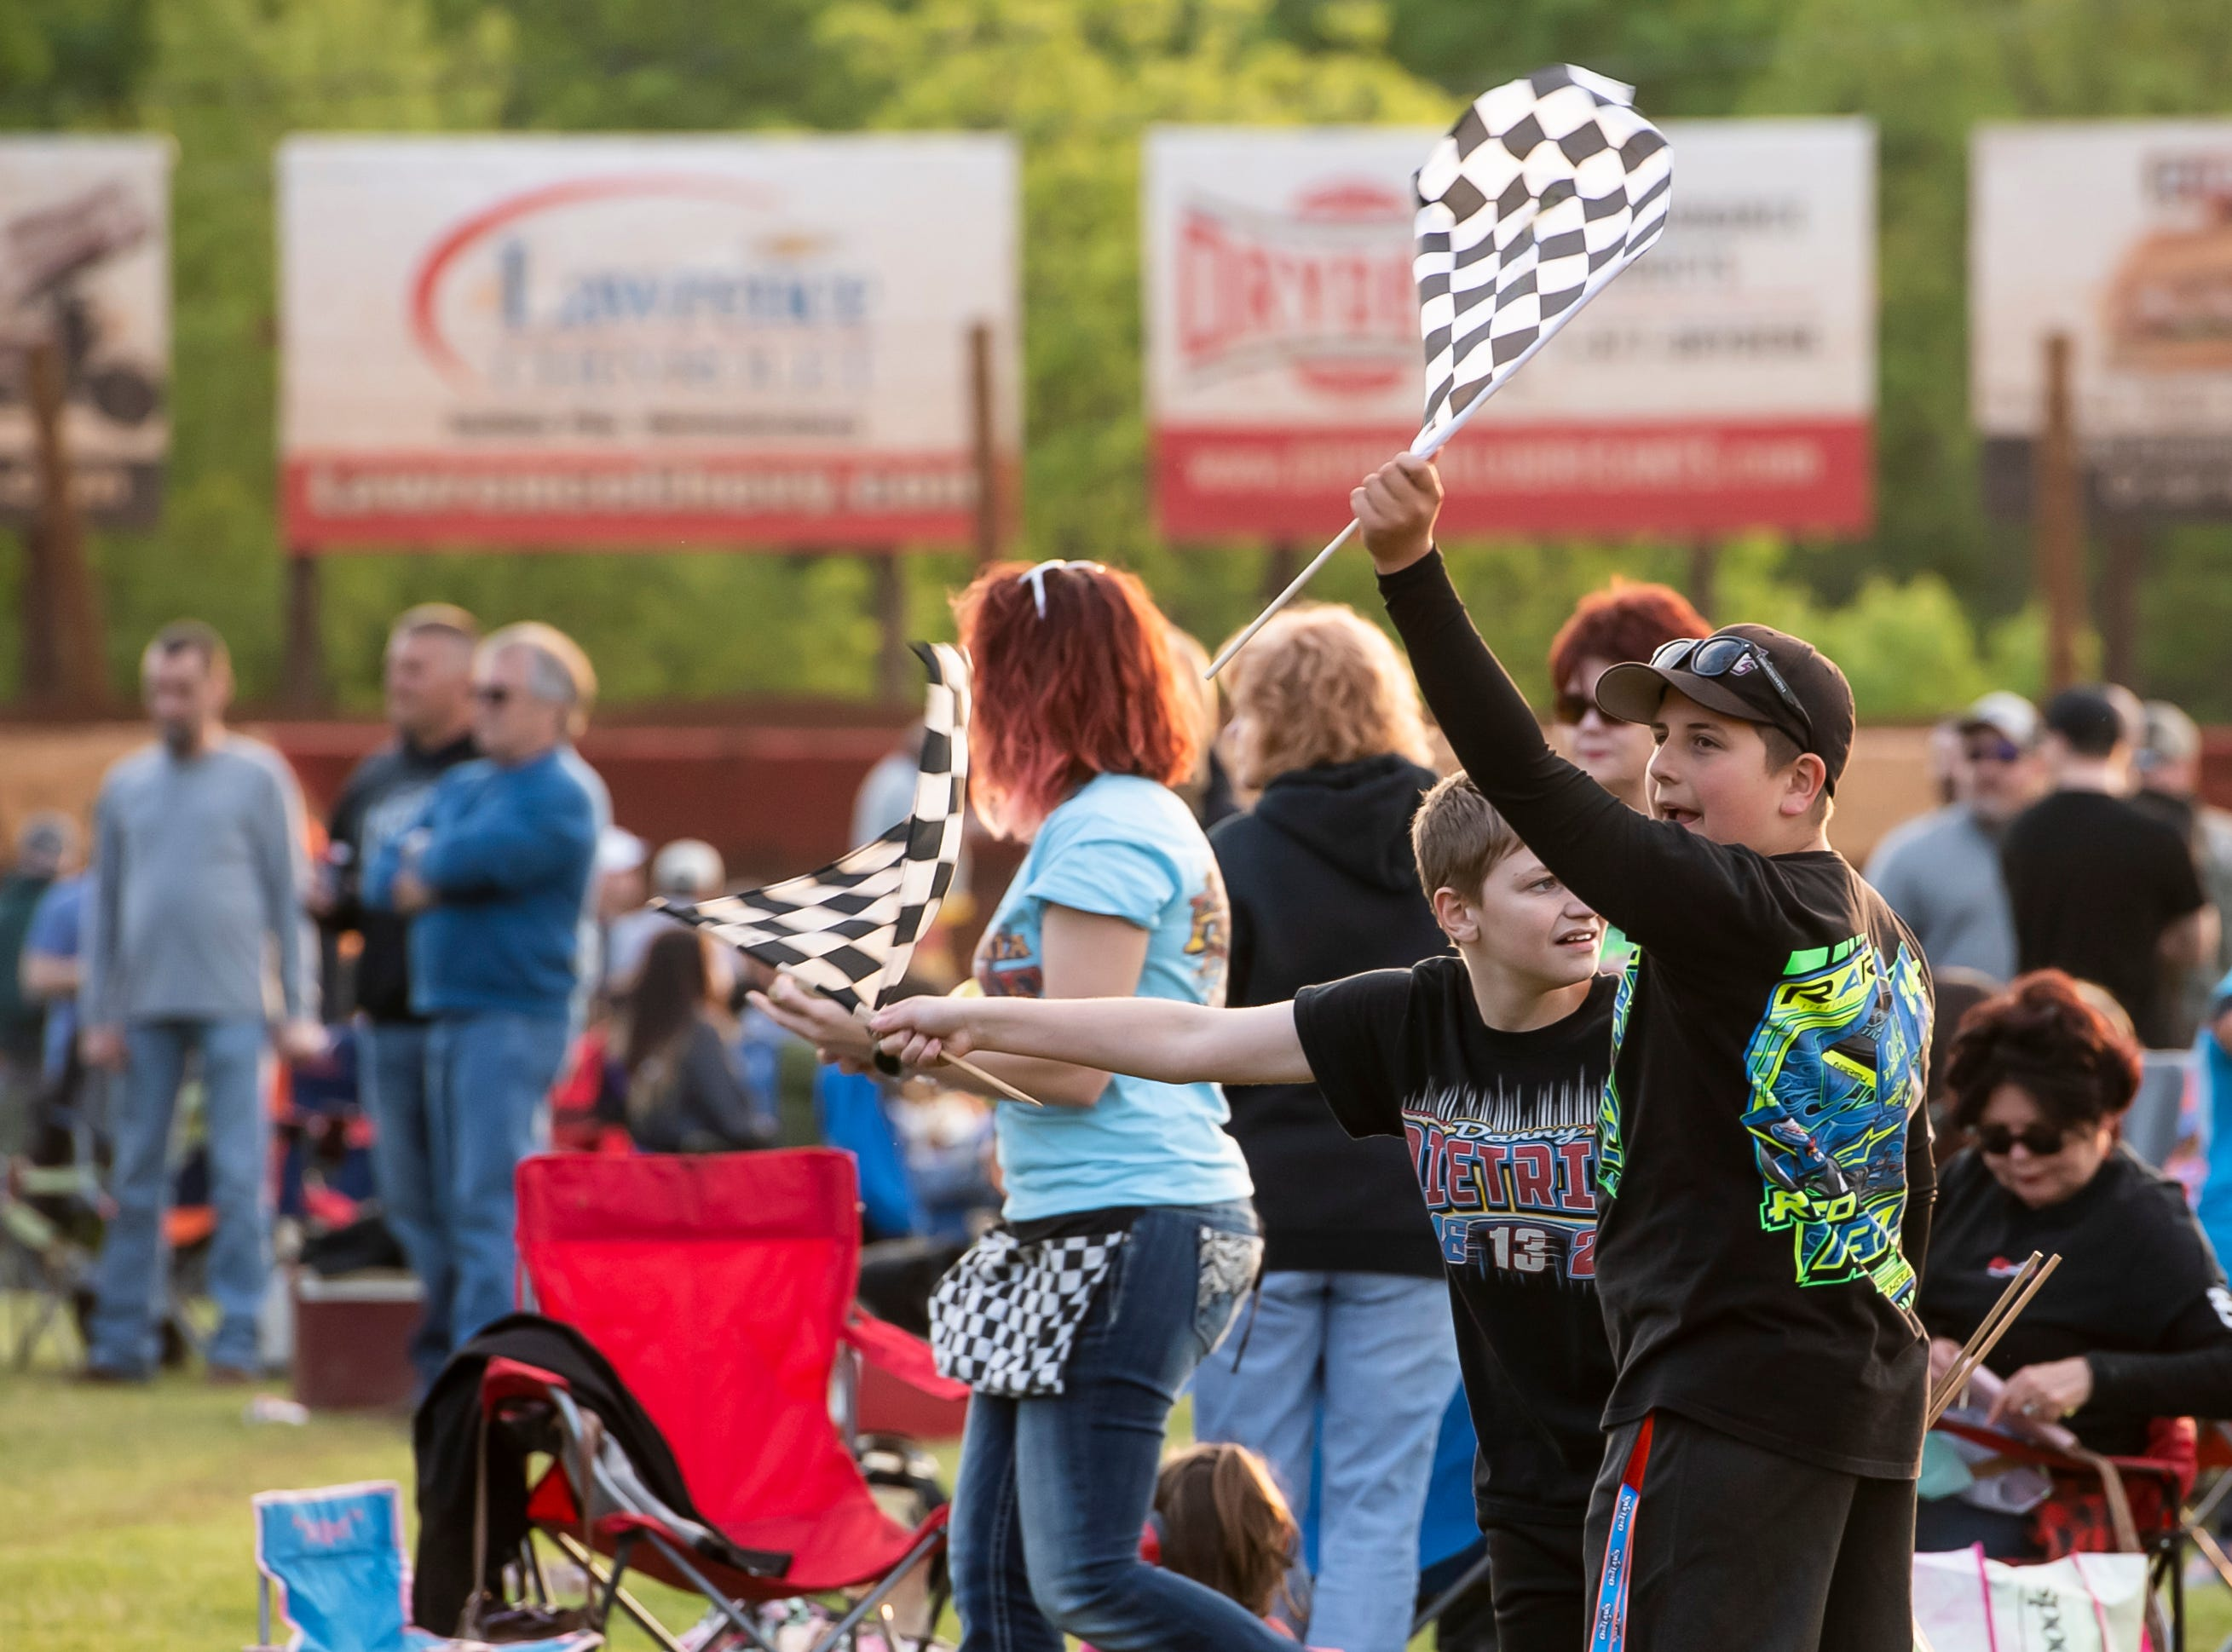 Cameron Klinedinst, 13, (left) and Aizik Shoap, 14, wave flags as drivers participate in the time trials during the World of Outlaws Gettysburg Clash at Lincoln Speedway in Abbottstown on Wednesday, May 15, 2019.